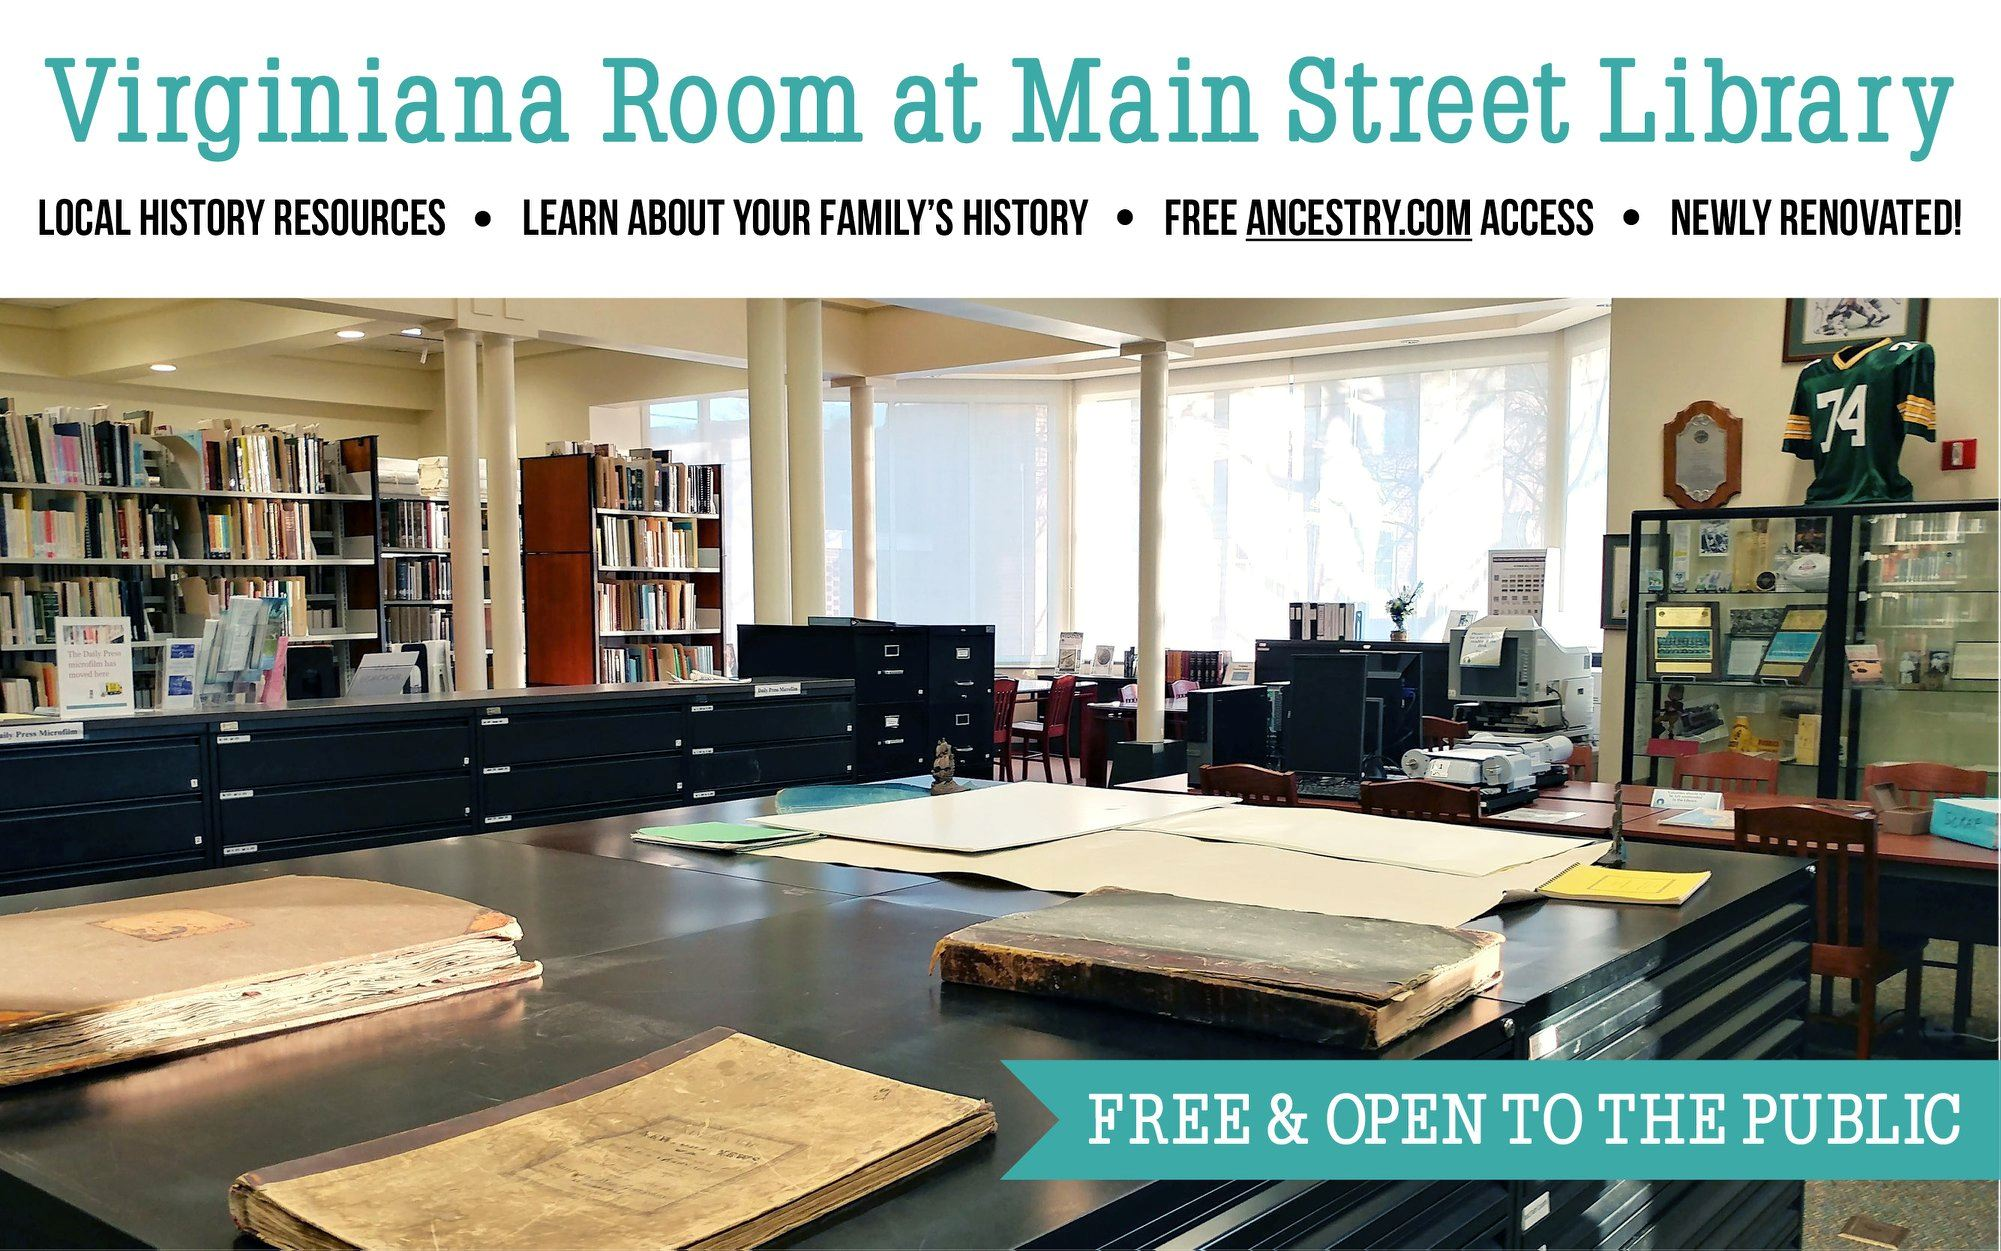 Virginiana Room Free and Open to the Public